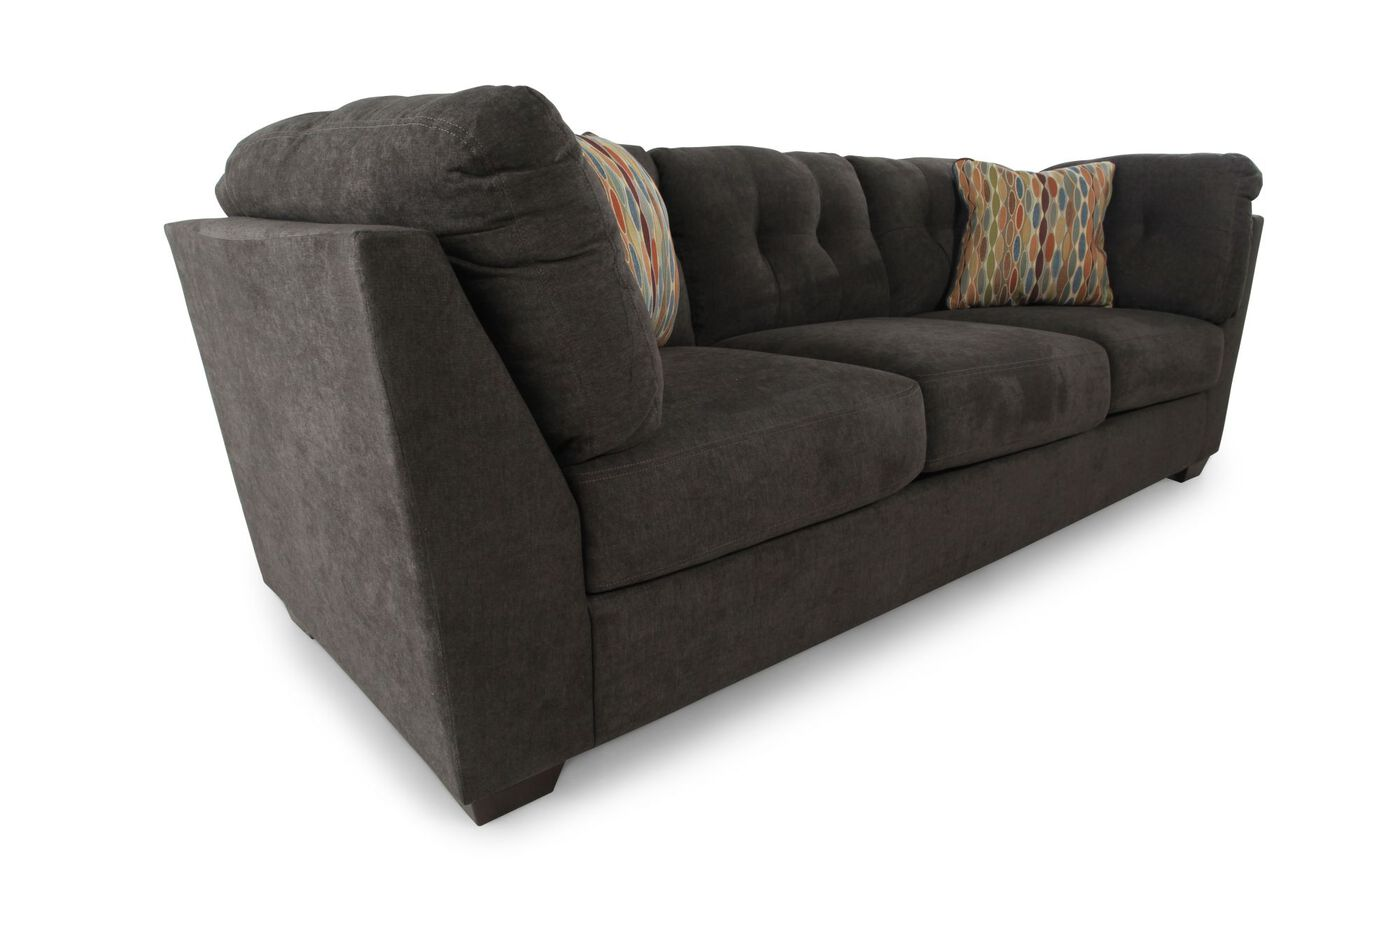 Tufted 103quot microfiber sofa in chocolate brown mathis for Chocolate brown microfiber sectional sofa